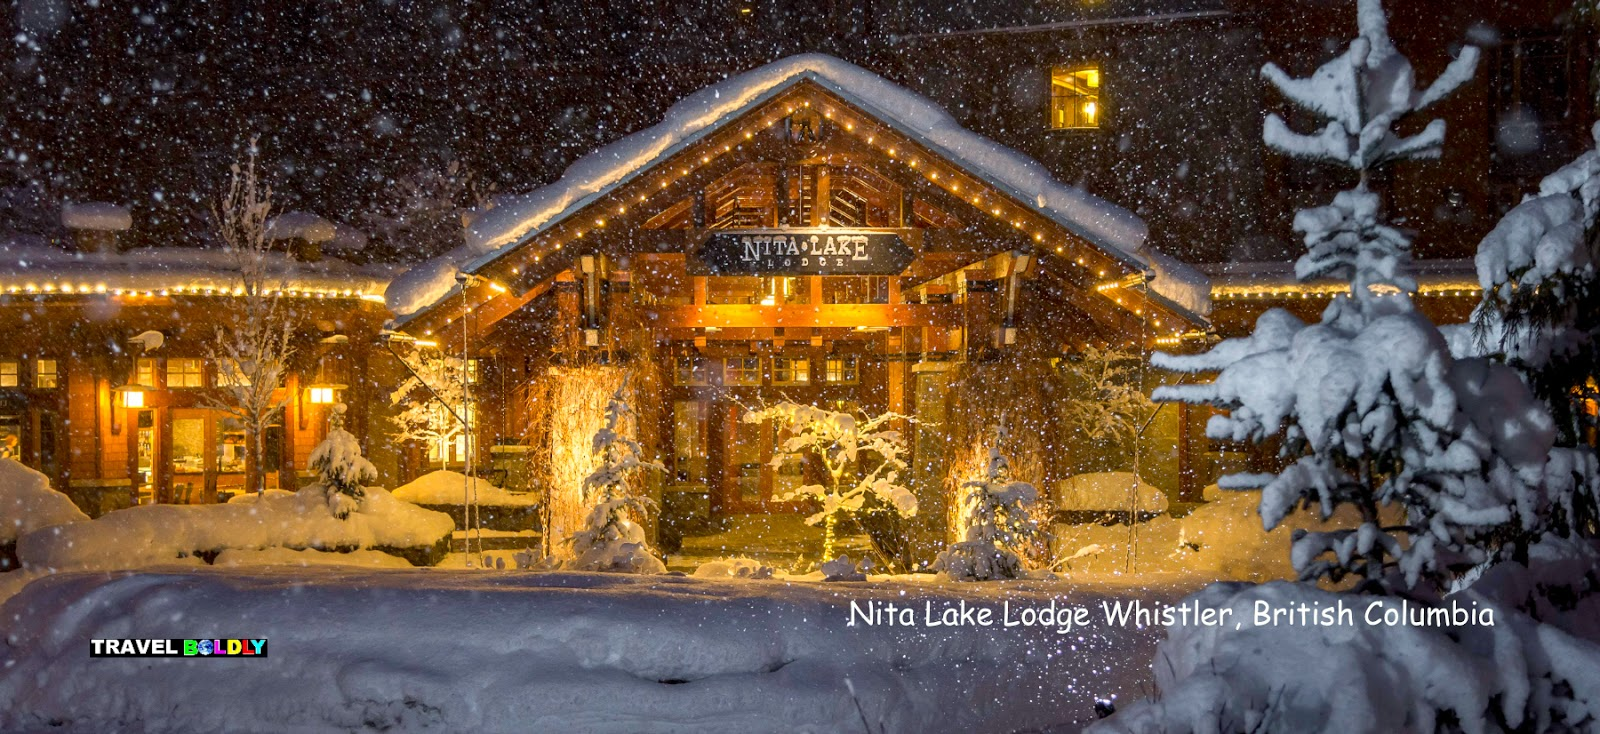 Nita Lake Lodge in in winter - Whistler, British Columbia Travel Boldly